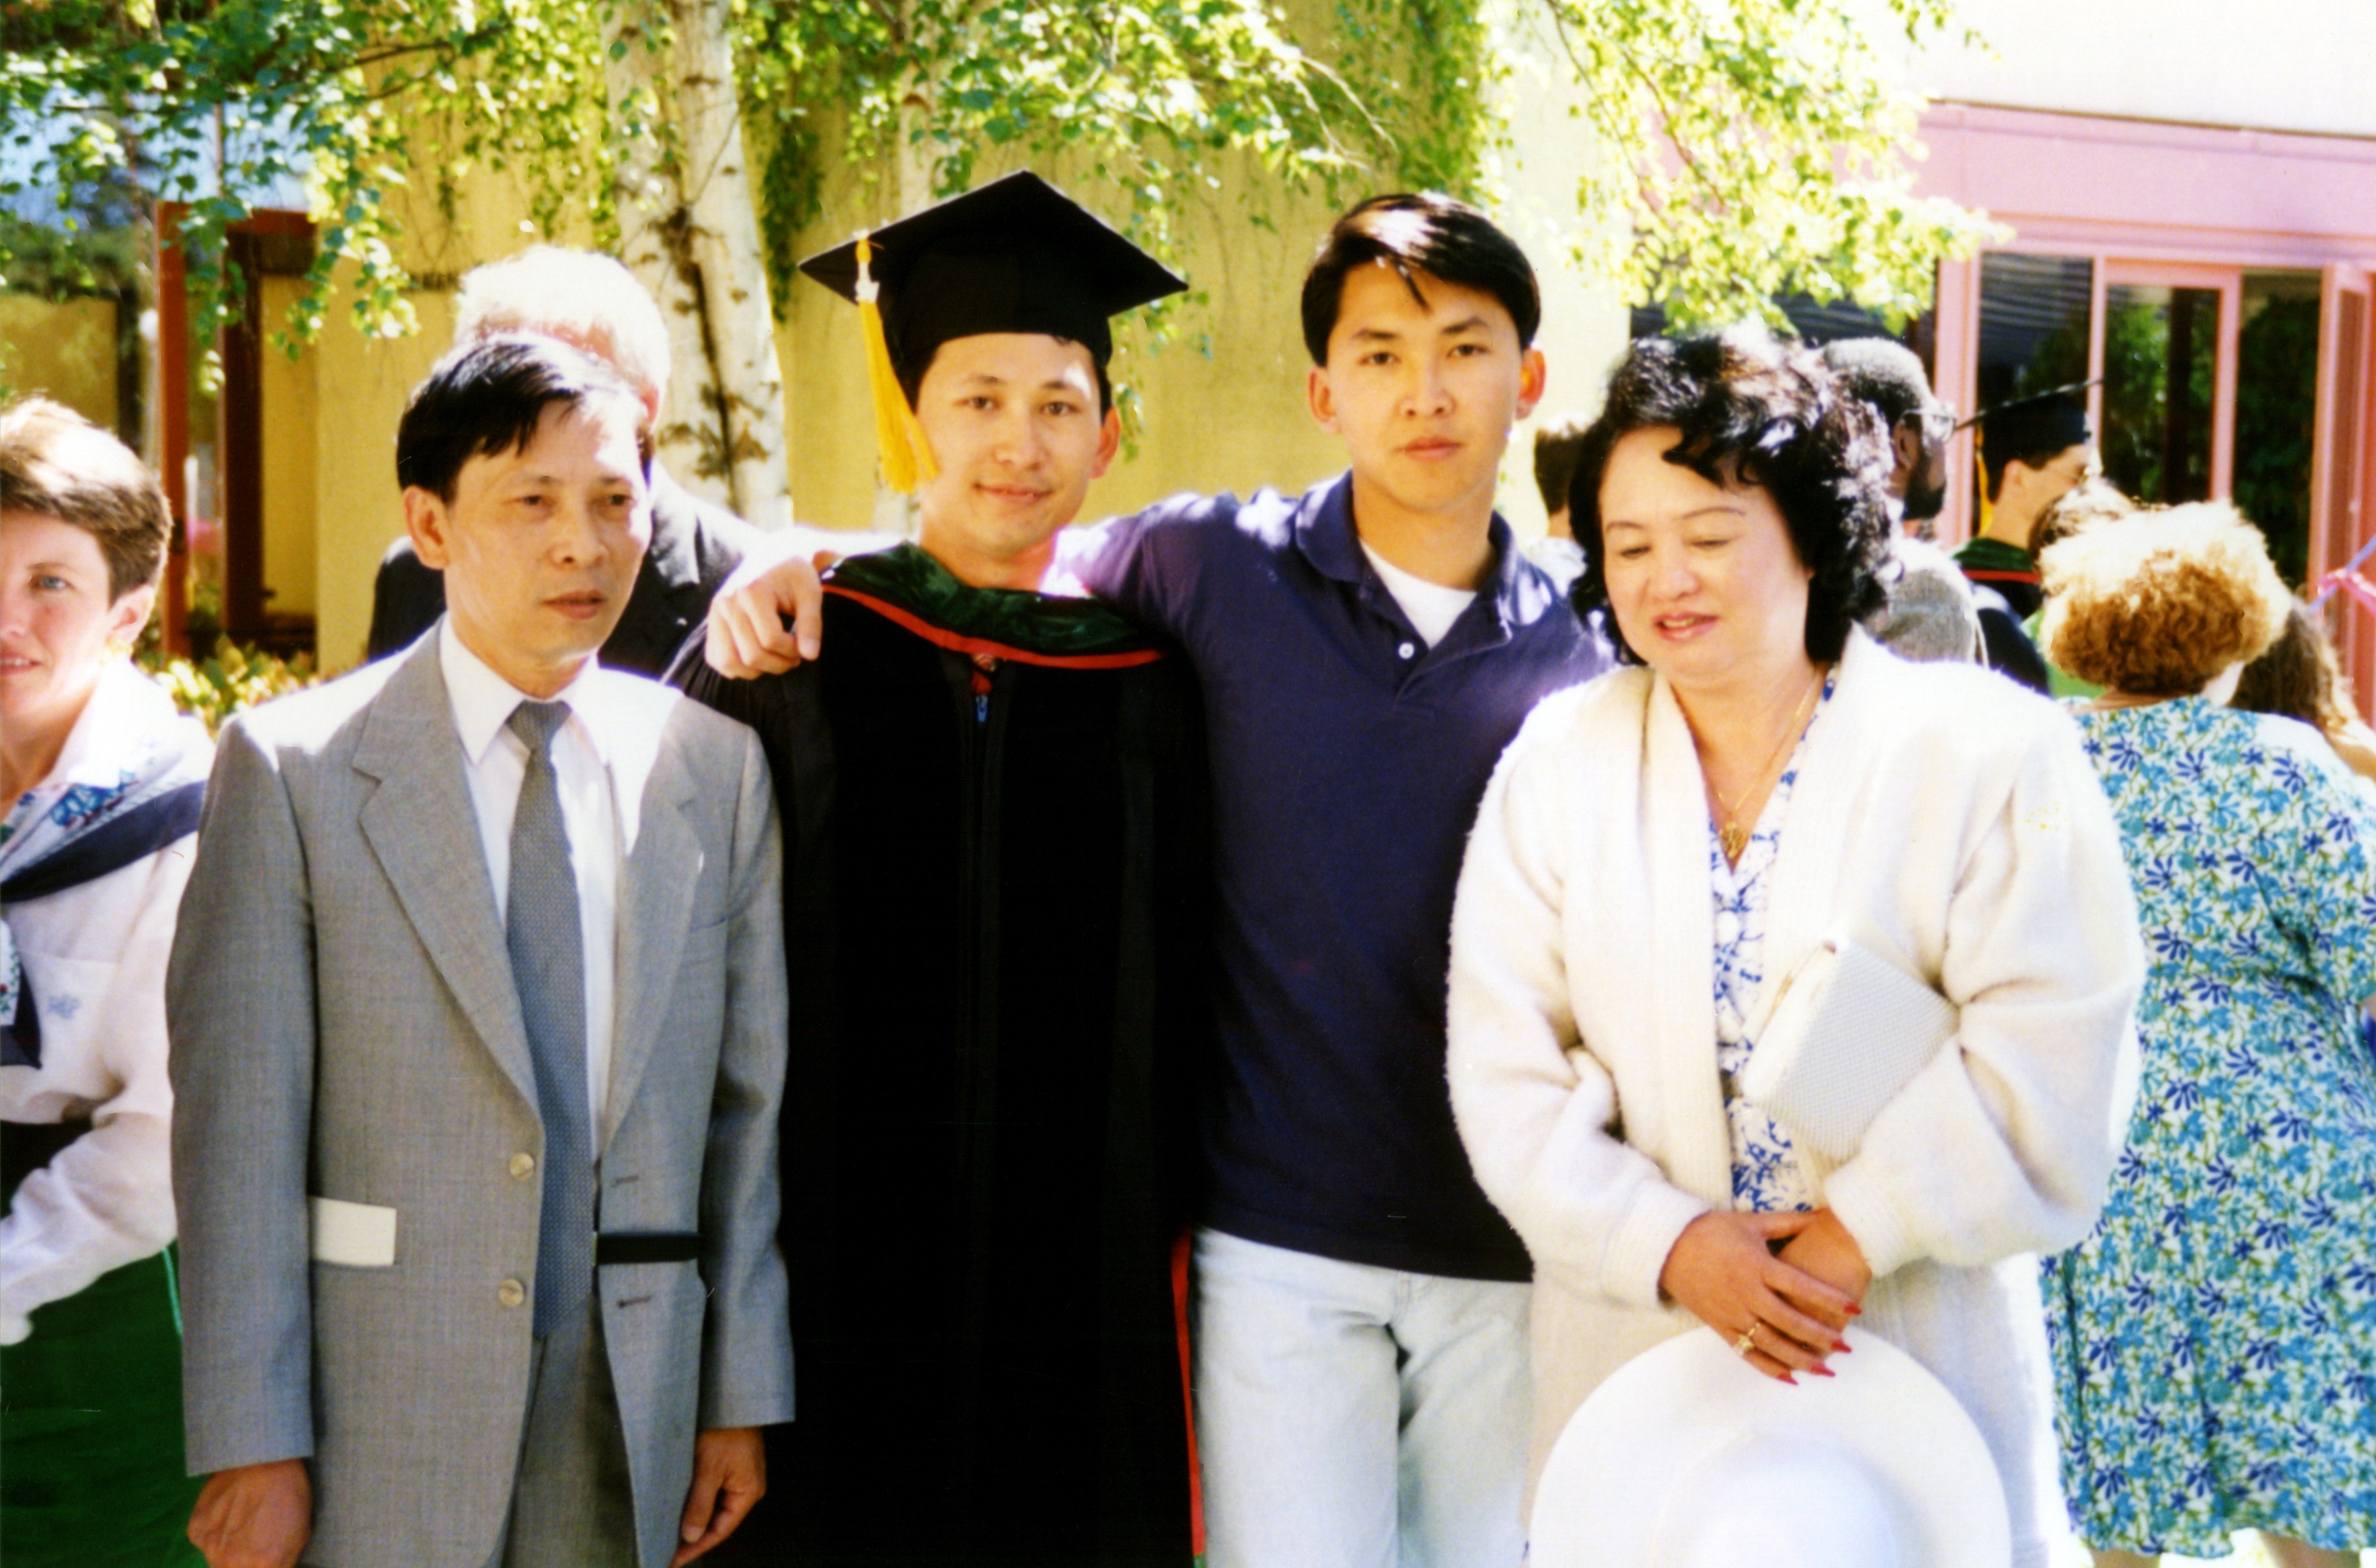 Tung with parents and brother